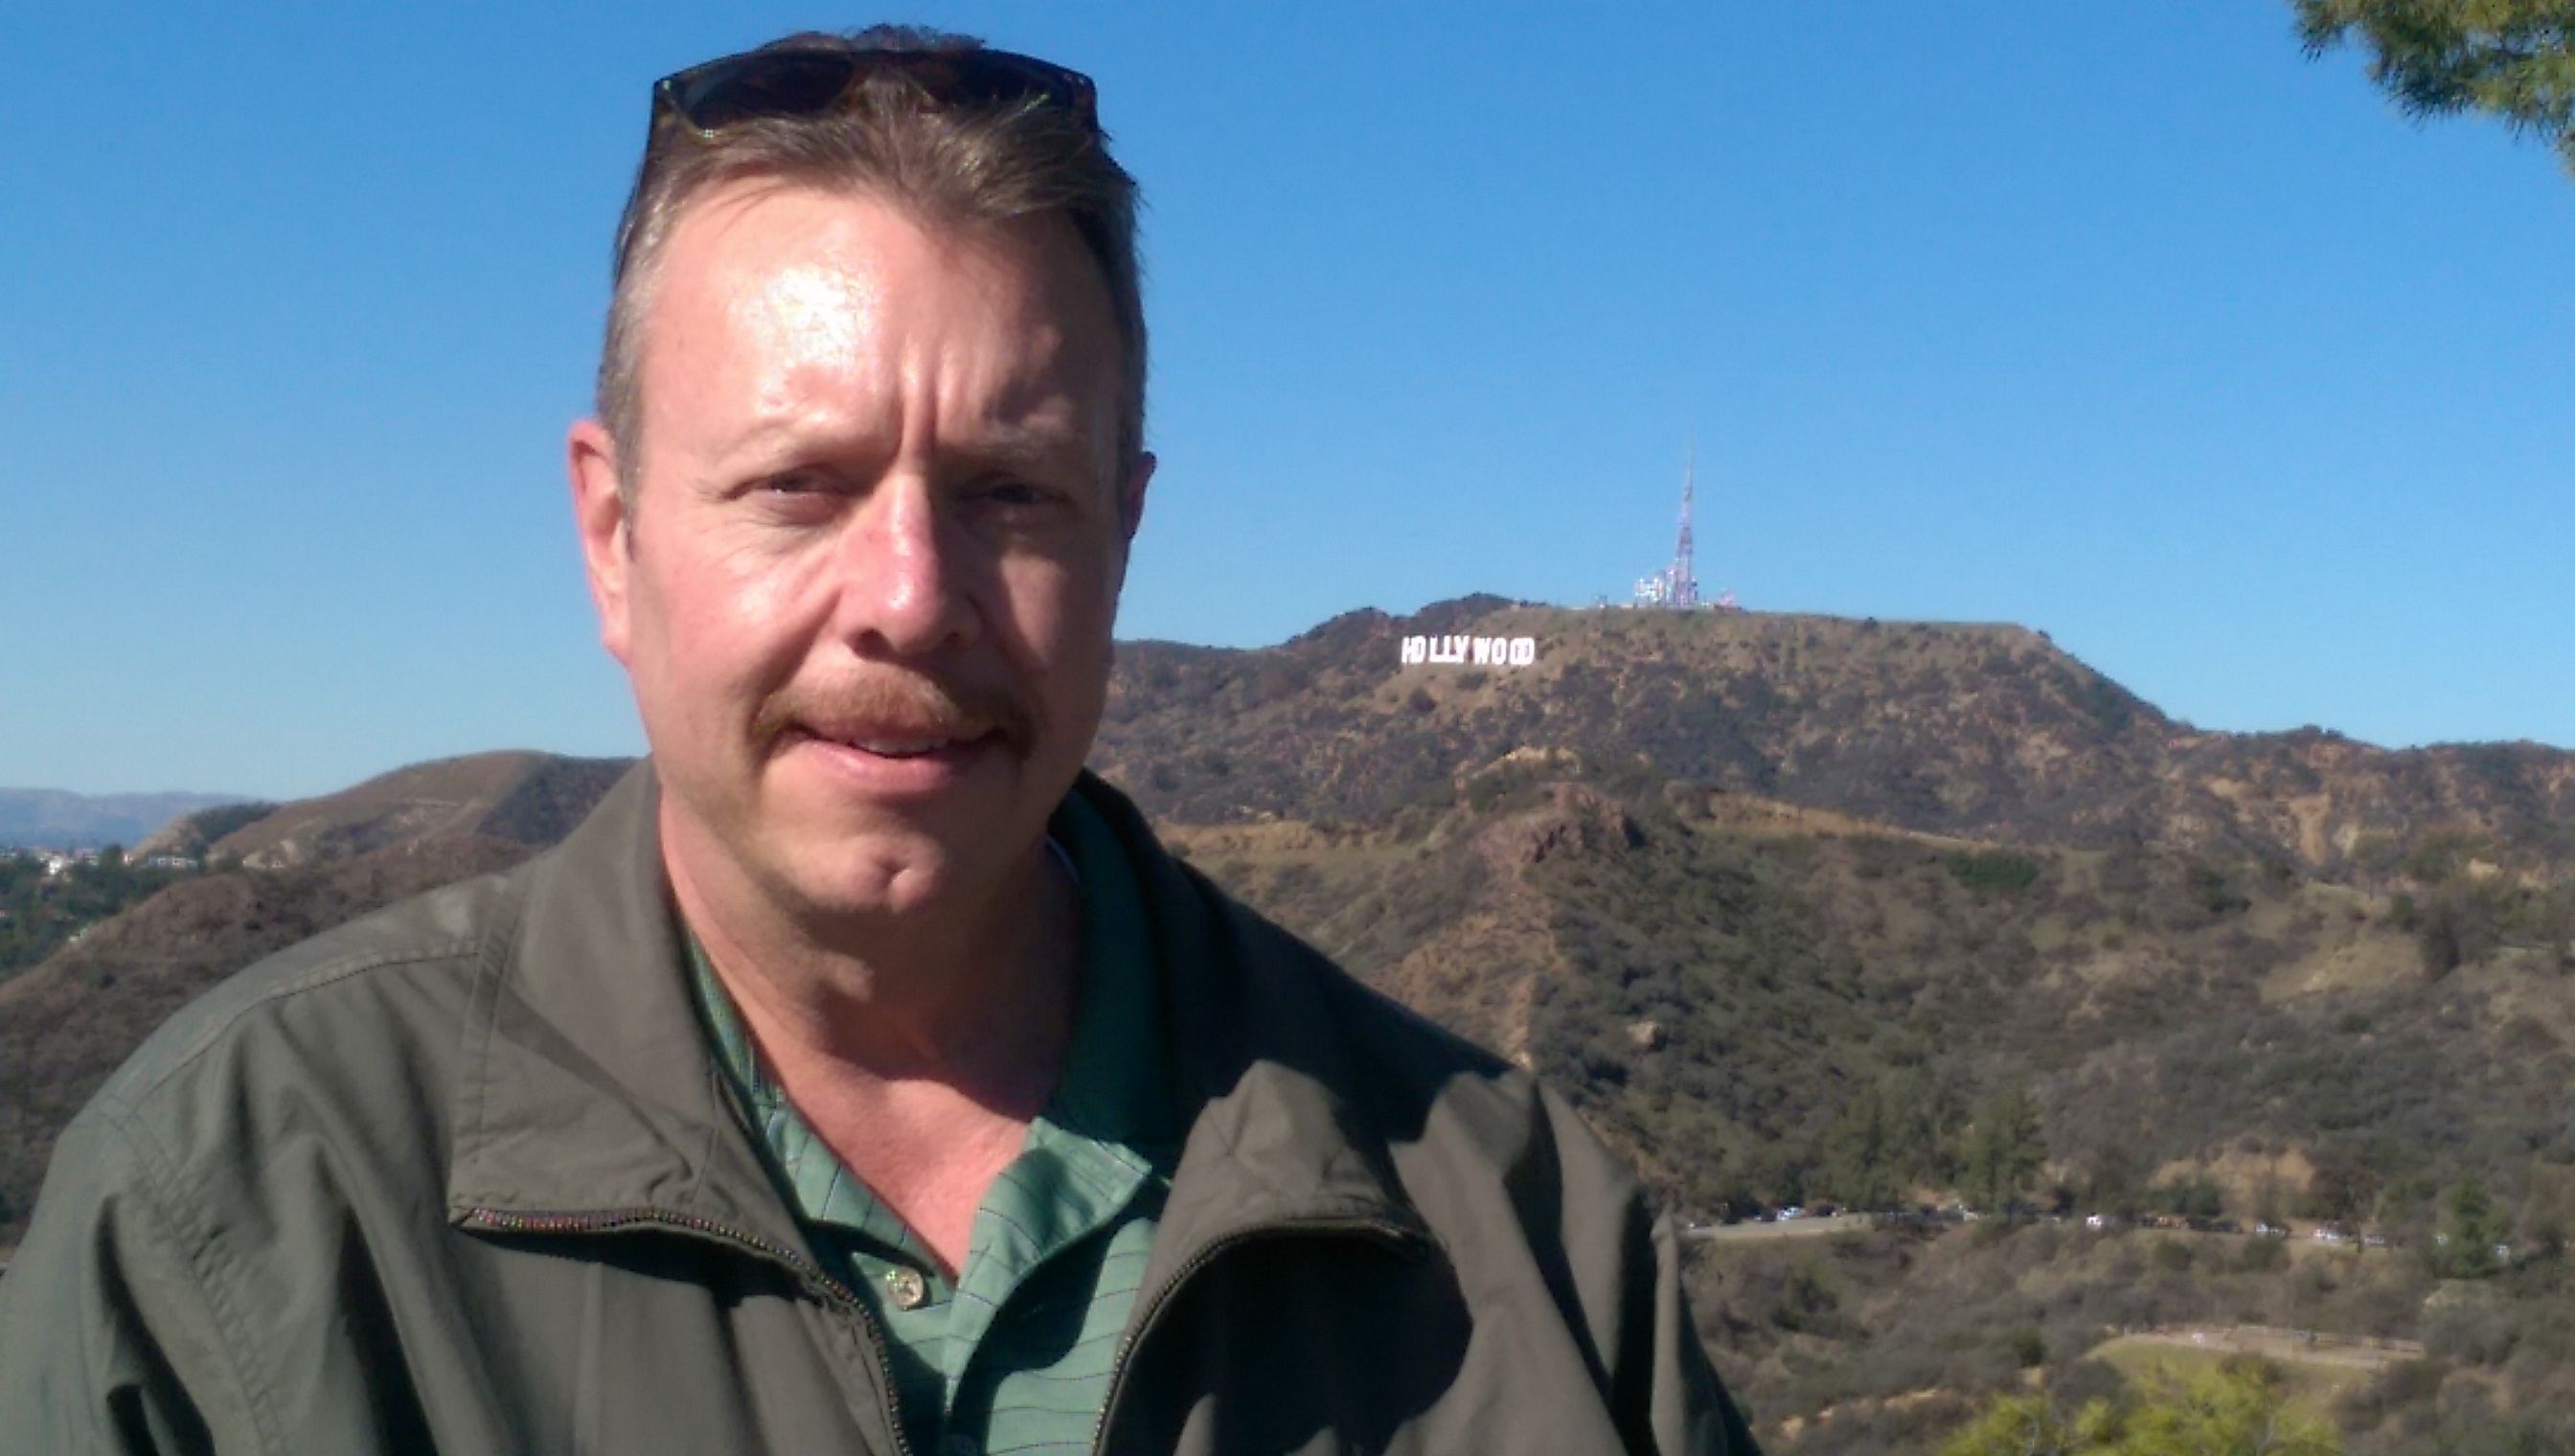 Edward Bennetts at Griffith Observatory with the Hollywood Sign 2688x1520